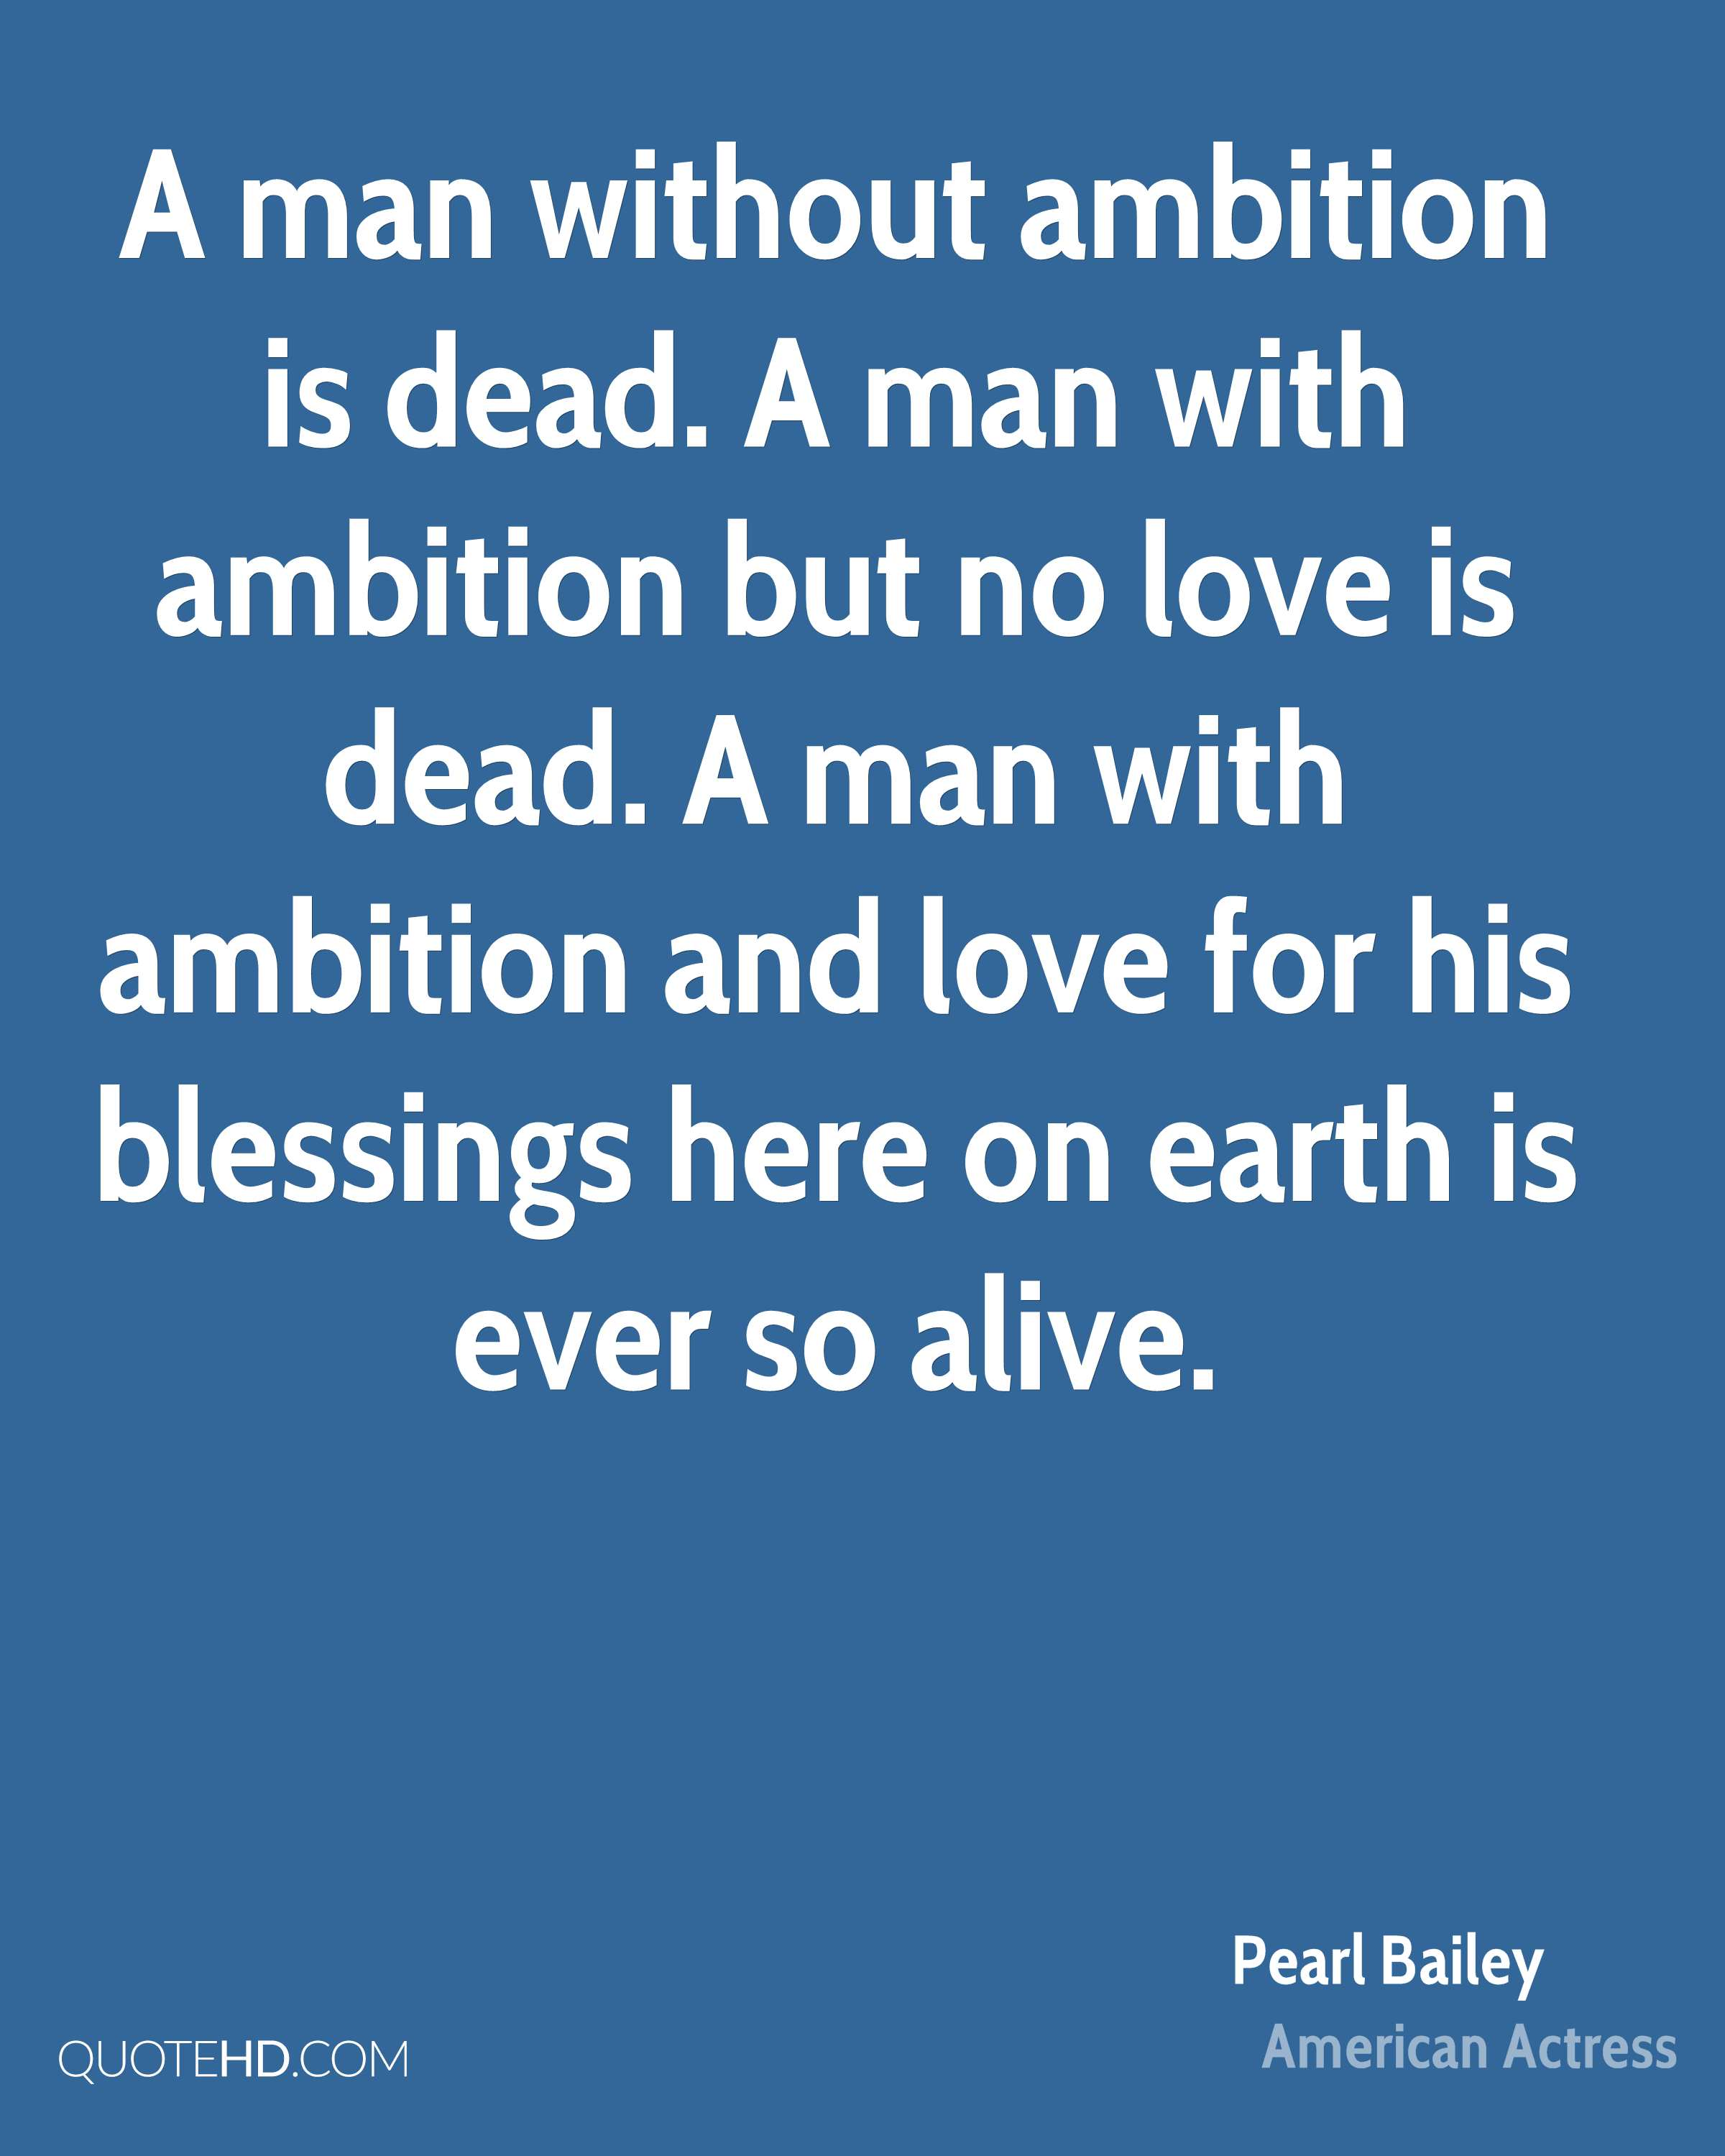 A man without ambition is dead A man with ambition but no love is dead